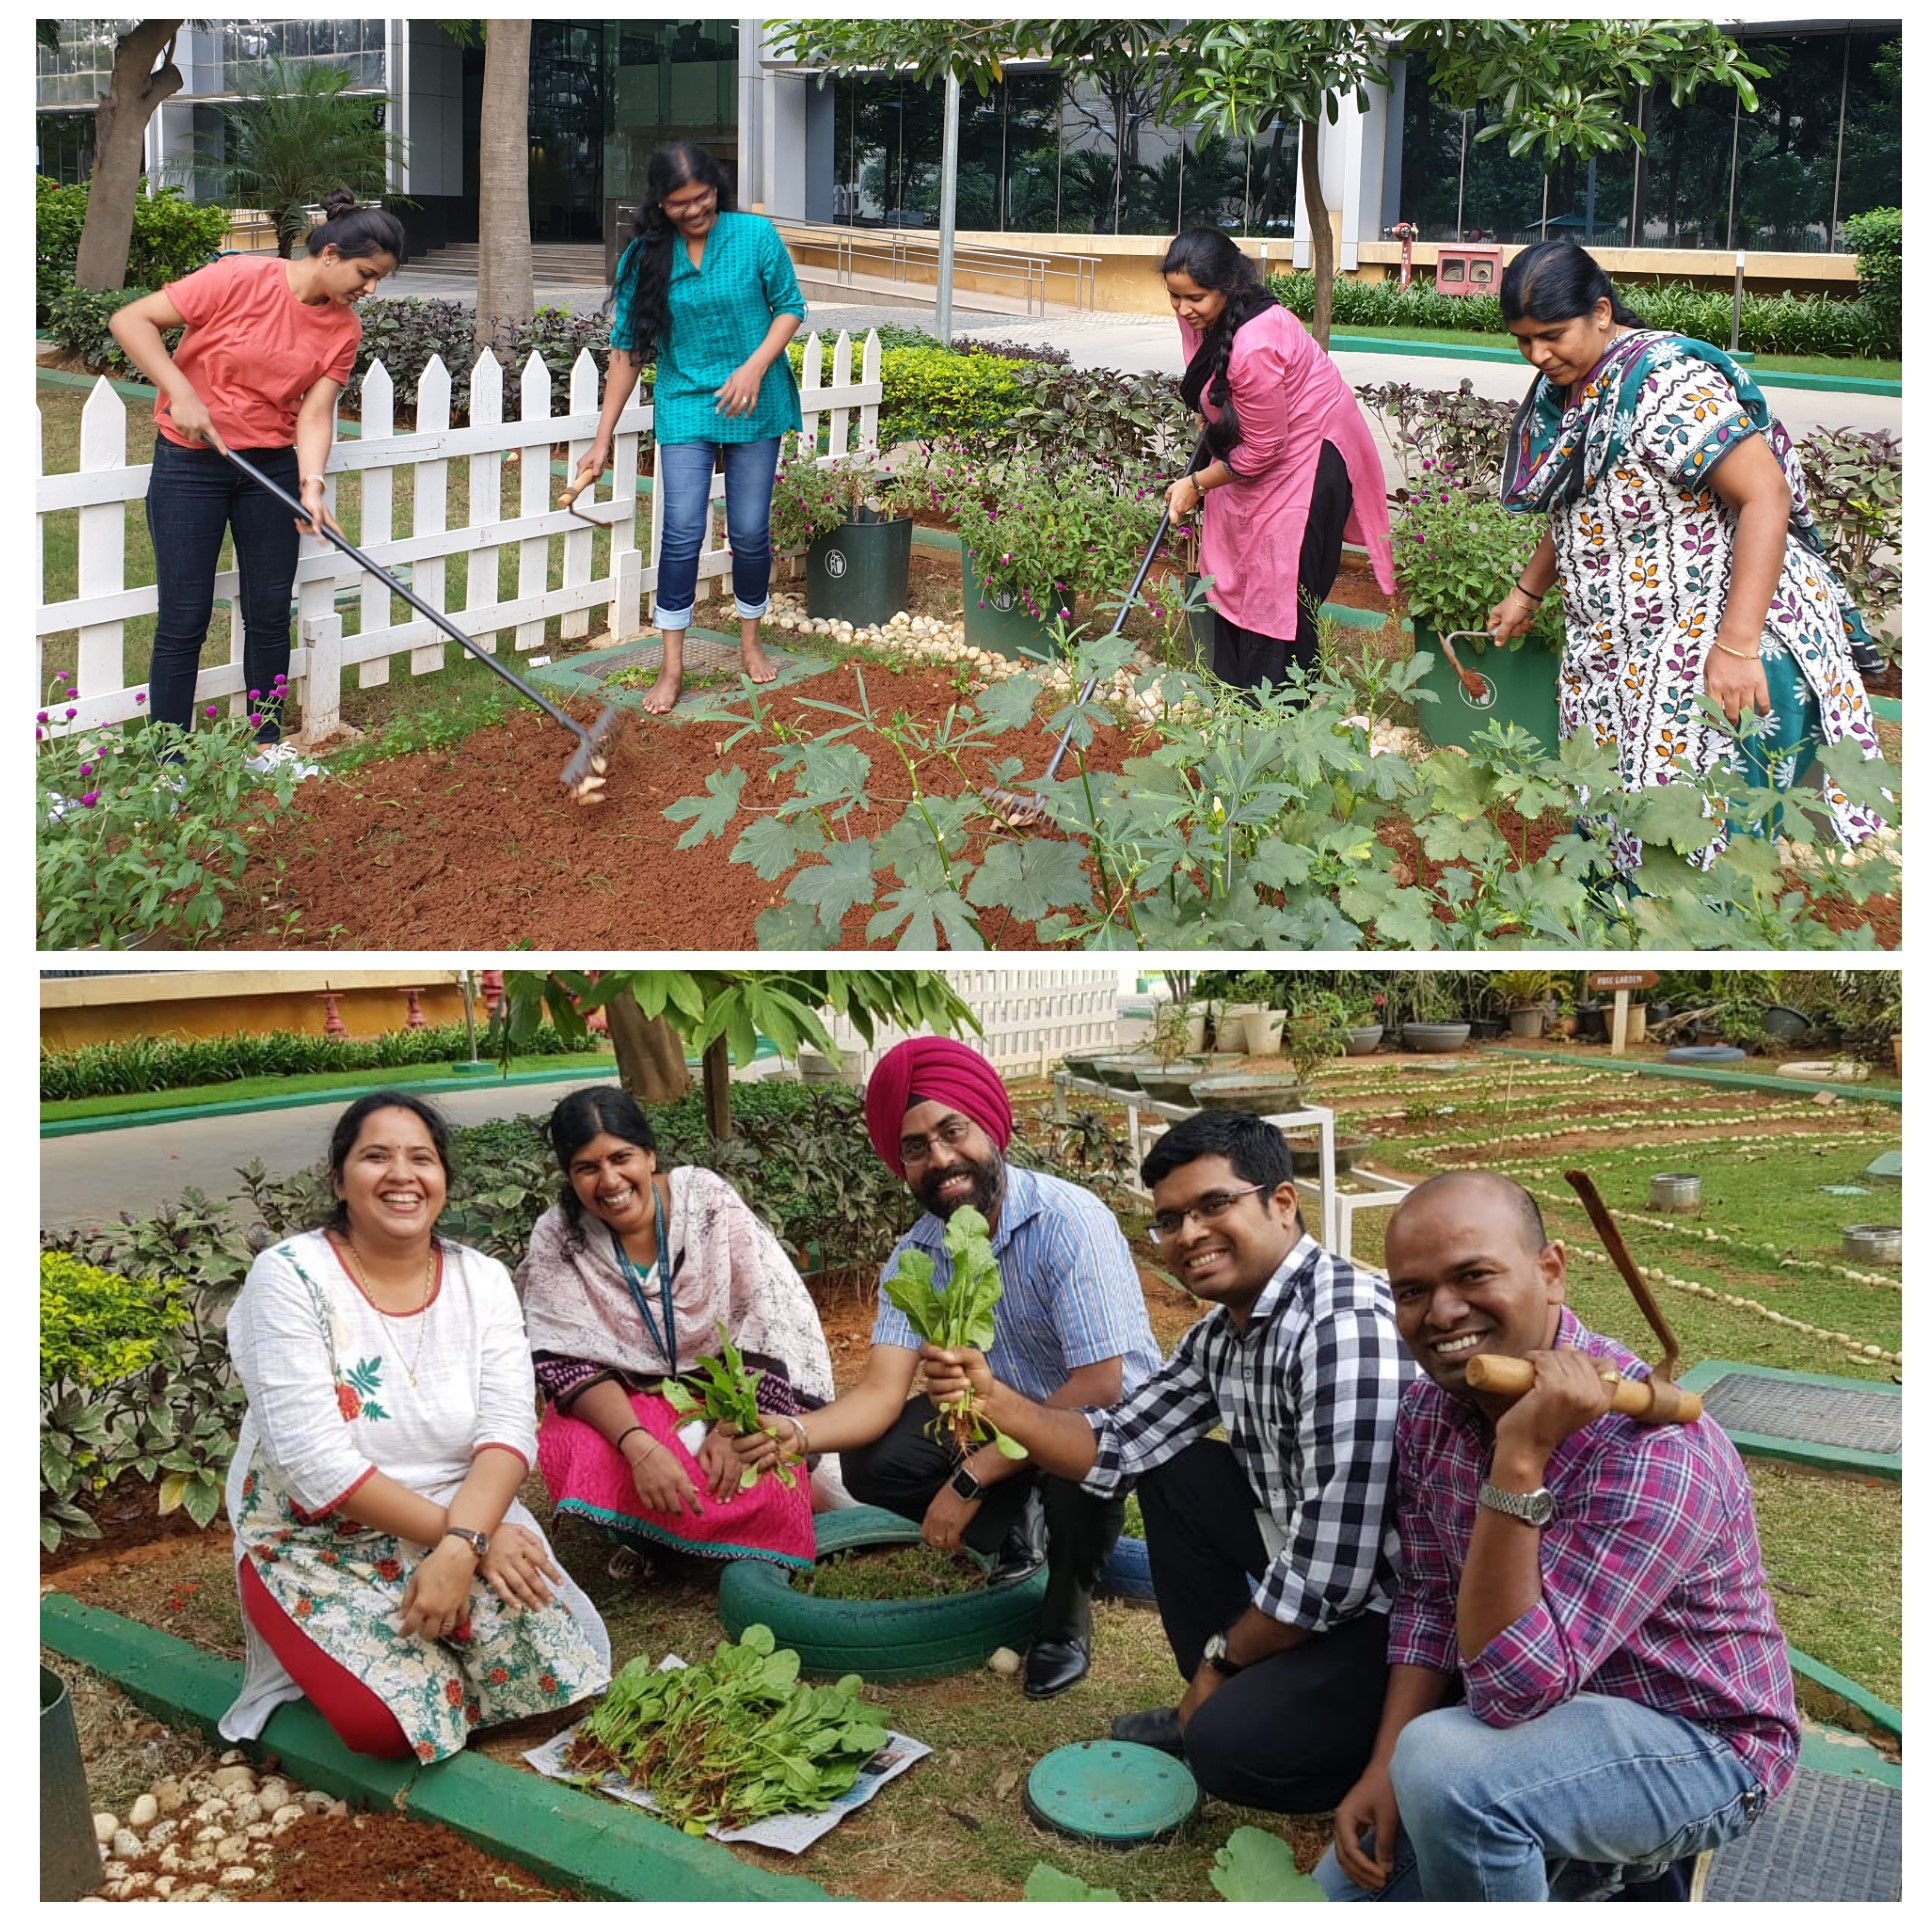 Raja and their peers working in the Cisco community garden in Bangalore.